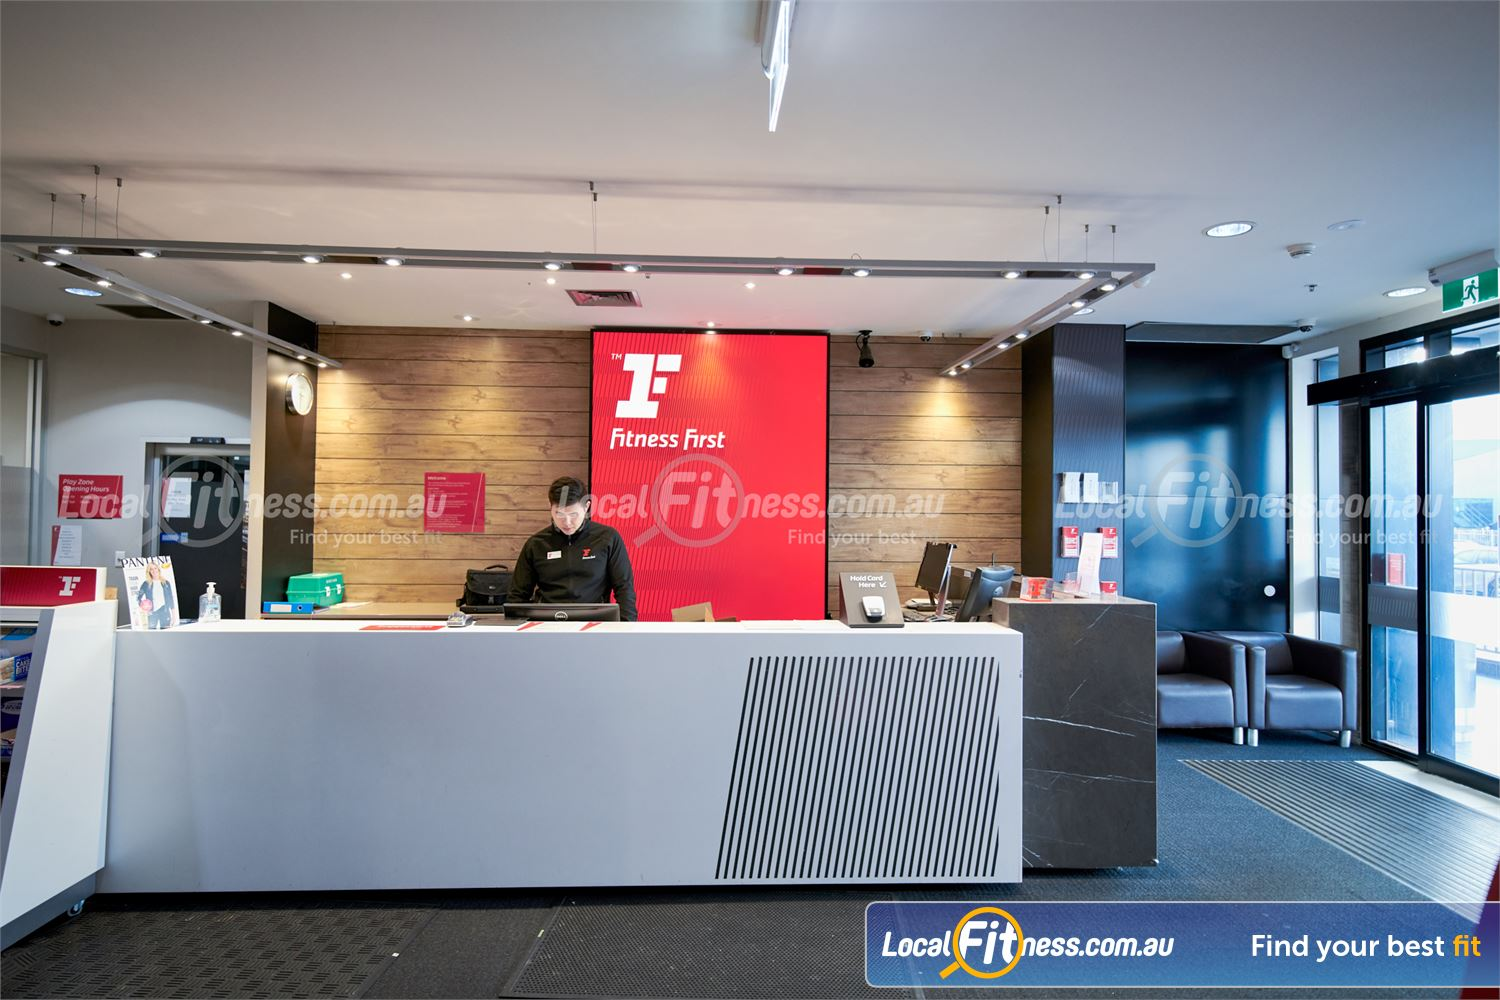 Fitness First Near Box Hill North Our team is ready to provide exceptional service and support.